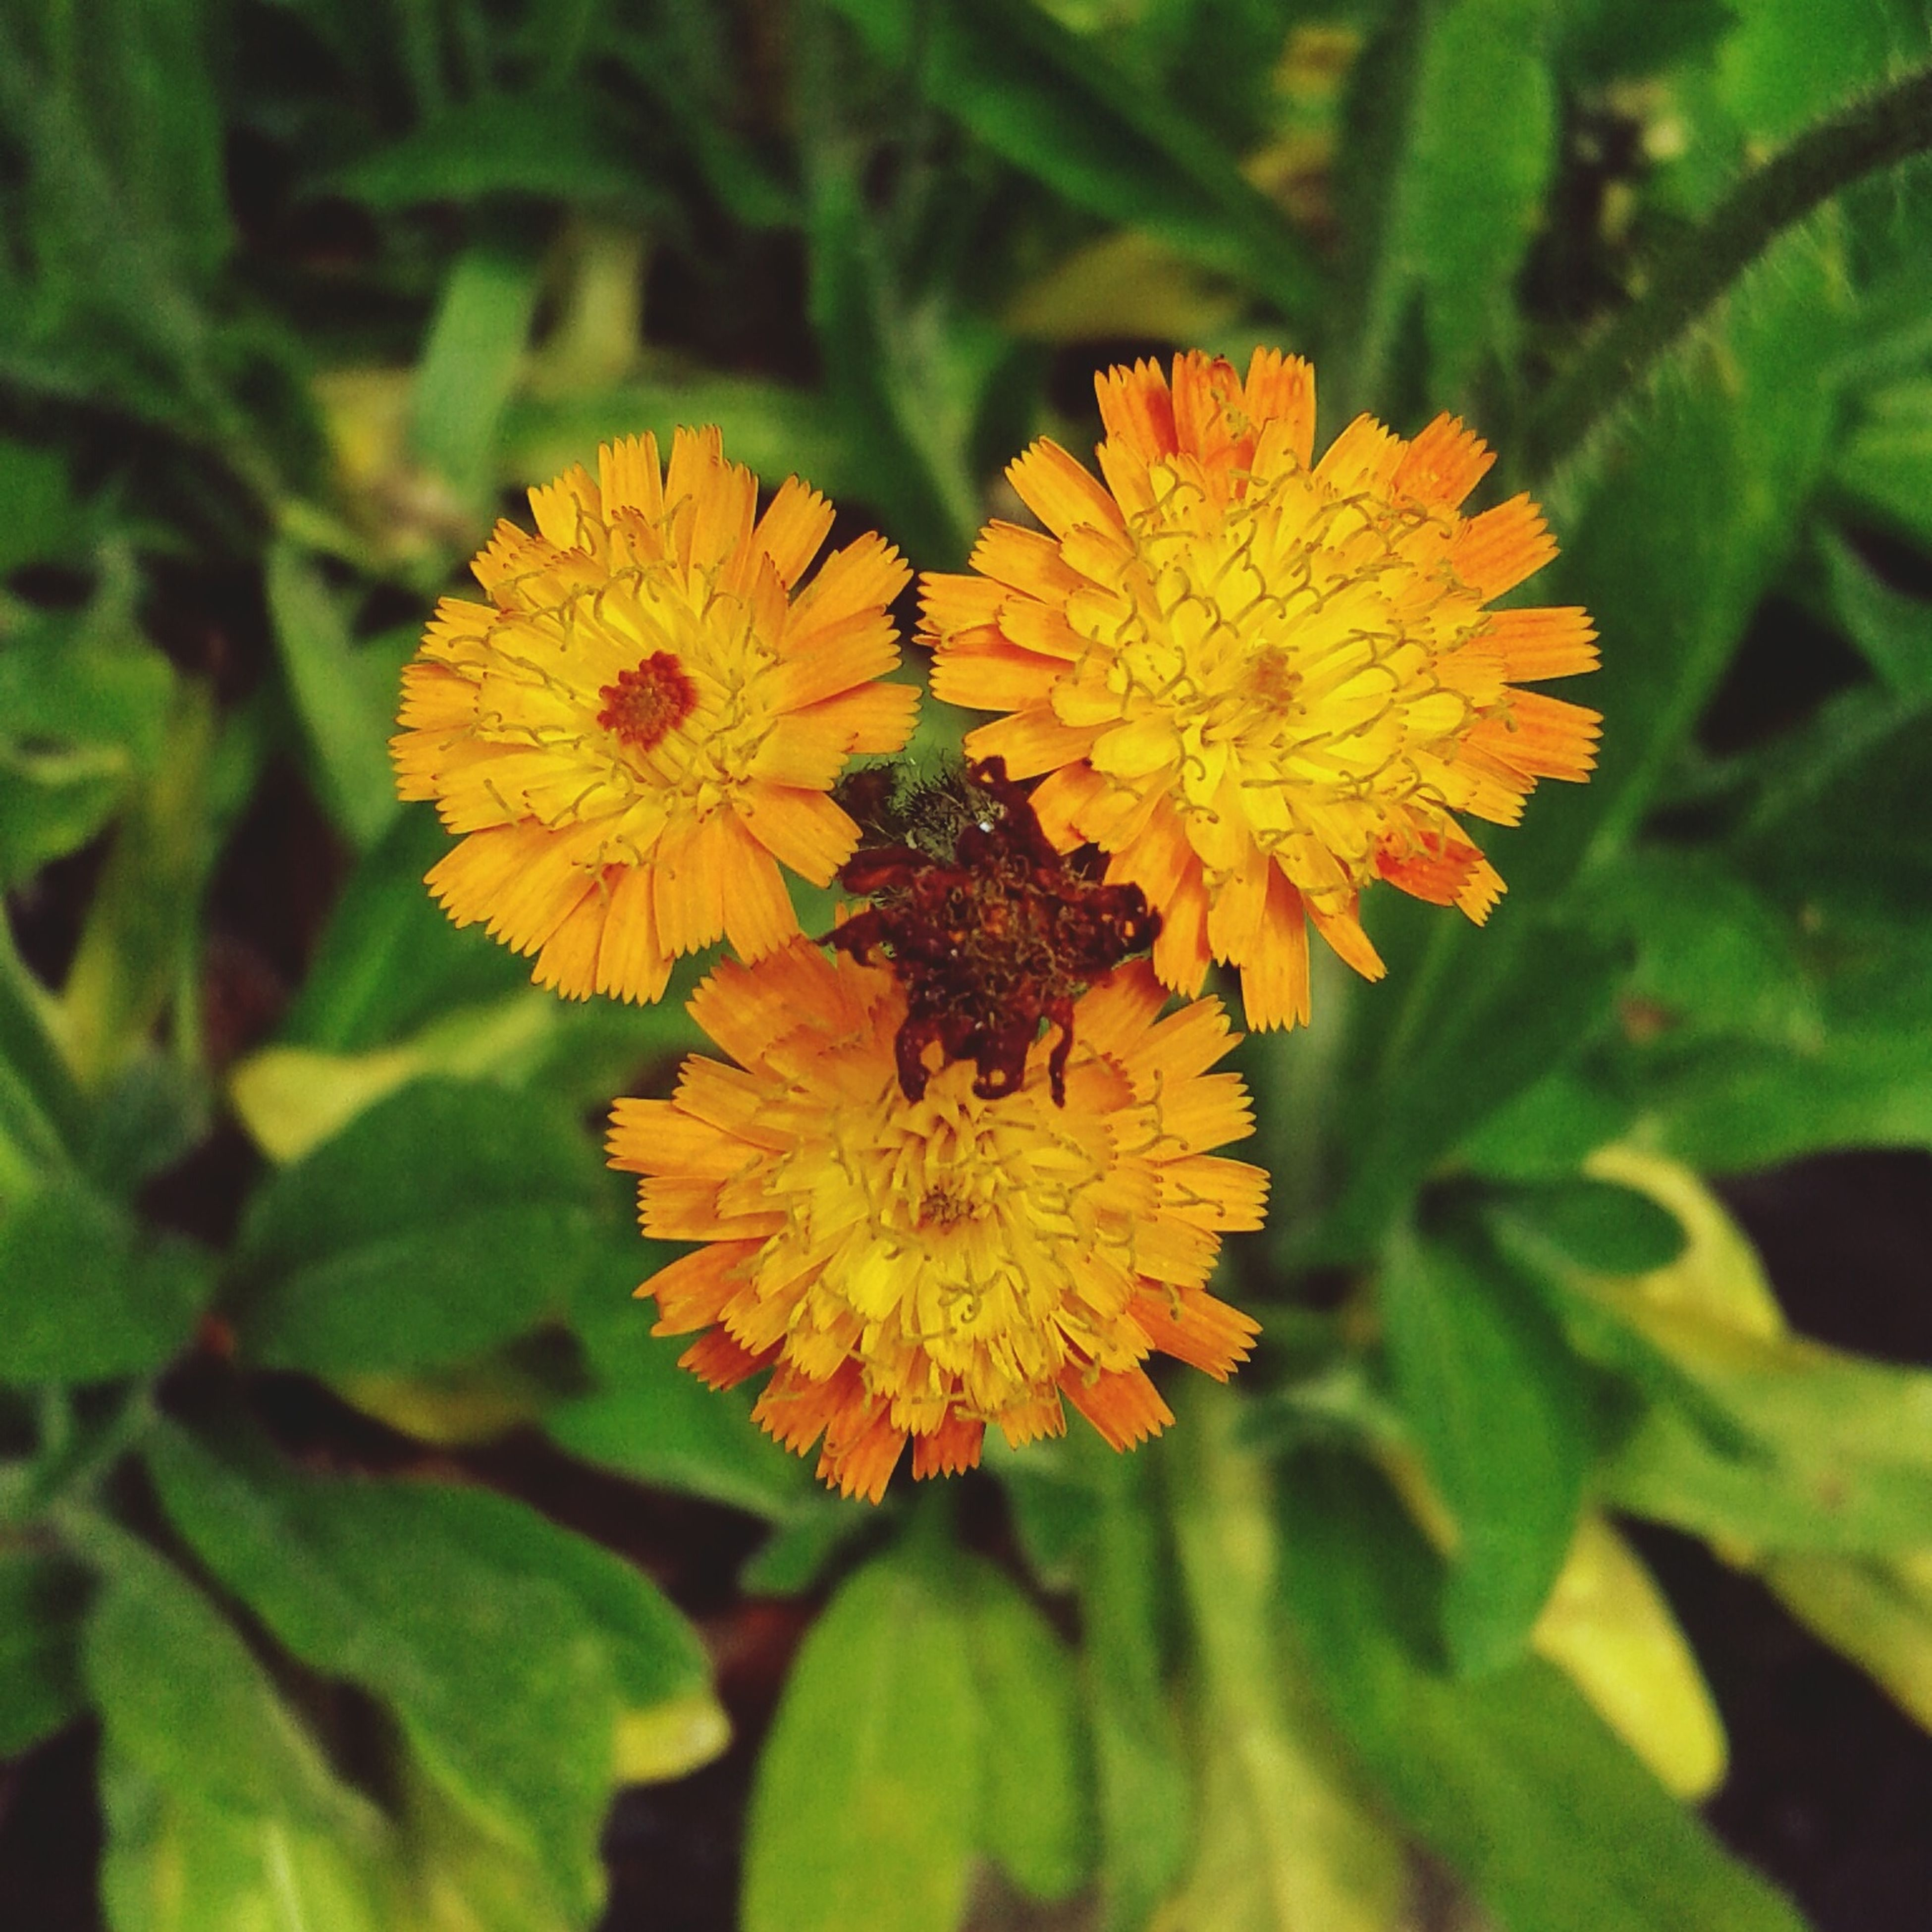 flower, petal, freshness, fragility, flower head, yellow, growth, beauty in nature, leaf, close-up, plant, blooming, nature, orange color, focus on foreground, high angle view, in bloom, green color, park - man made space, pollen